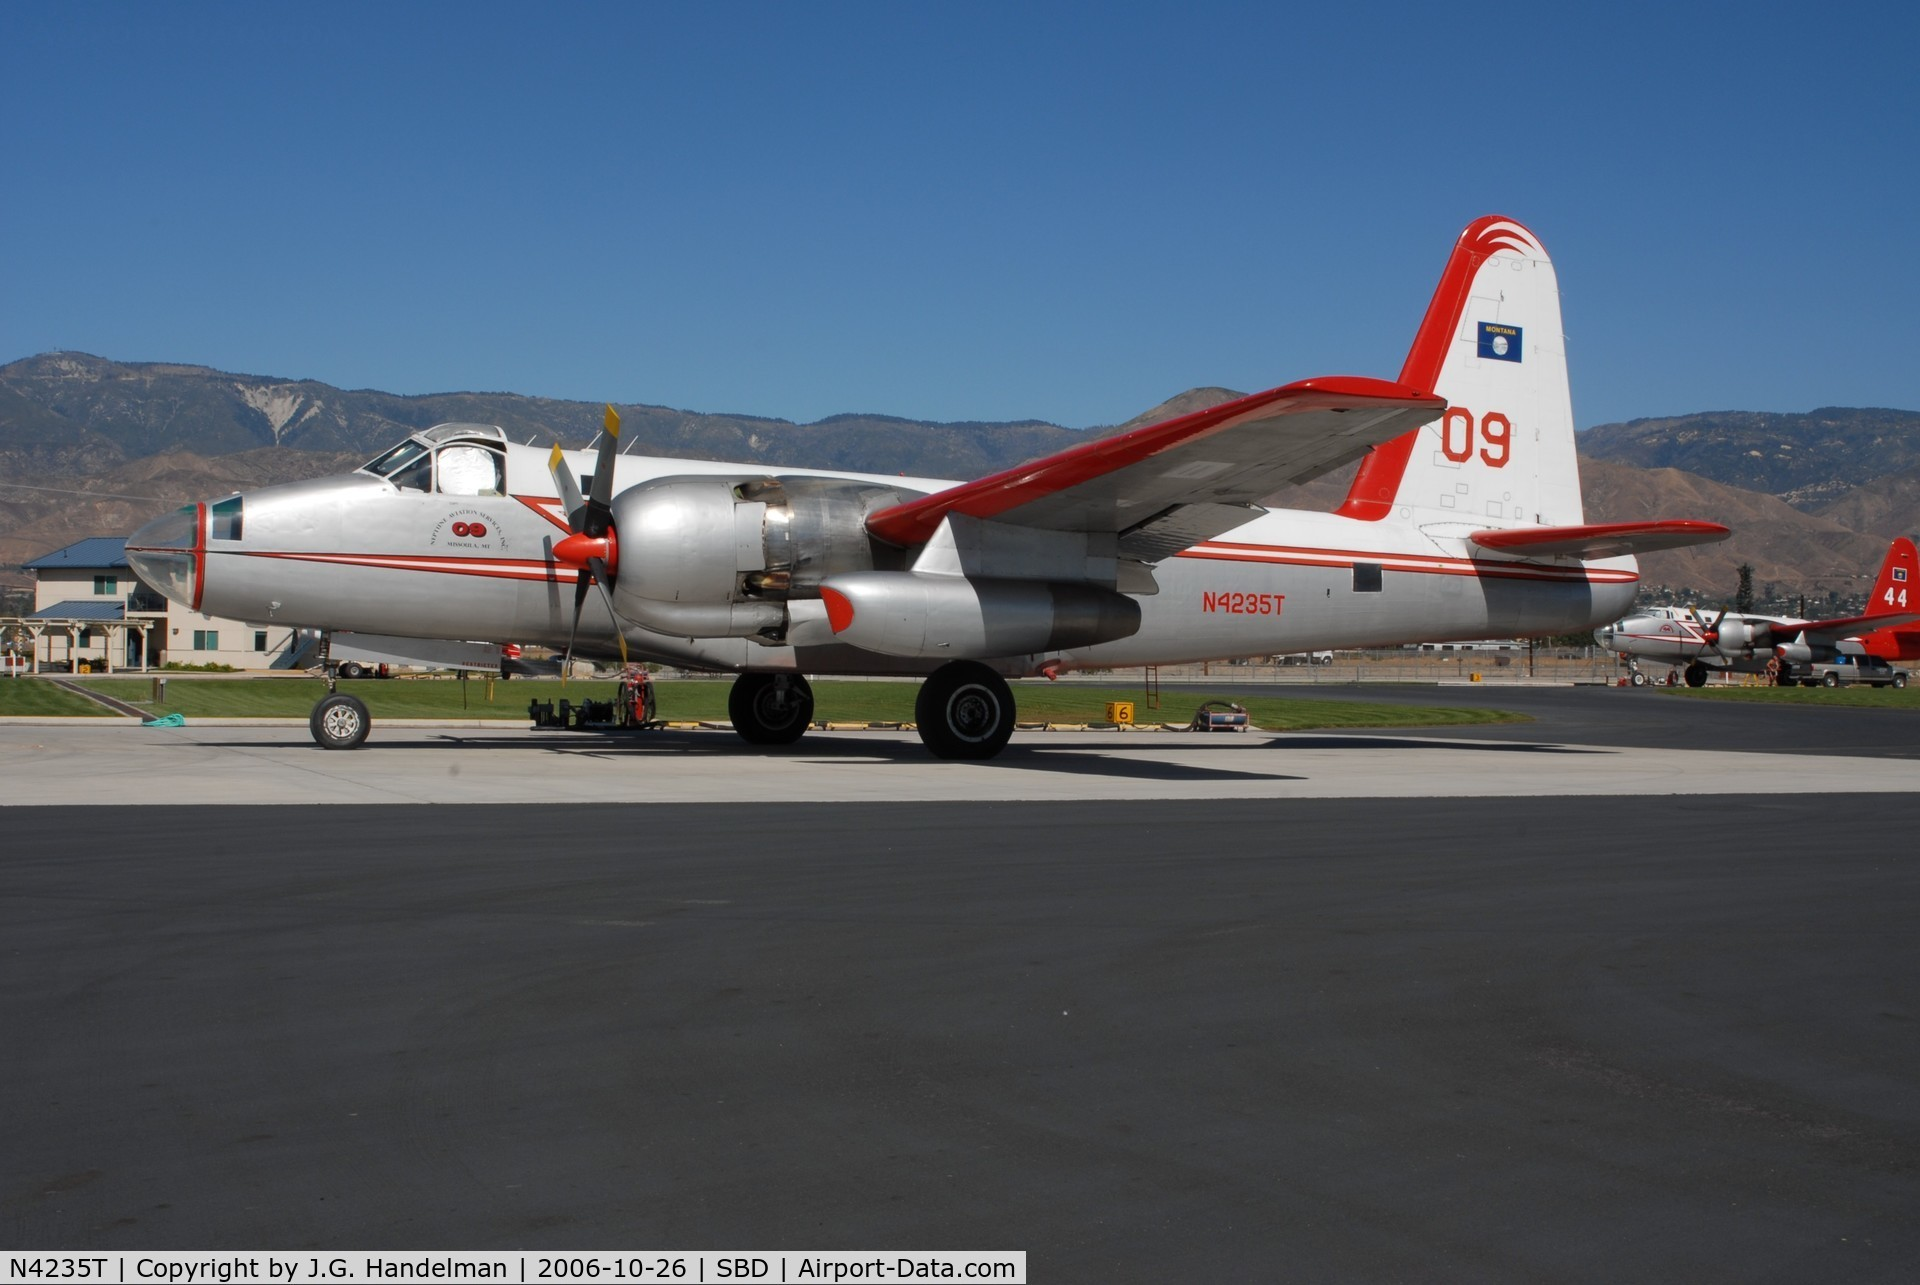 N4235T, 1962 Lockheed SP-2H C/N 150282, ex BuNo 150282 after fire drop